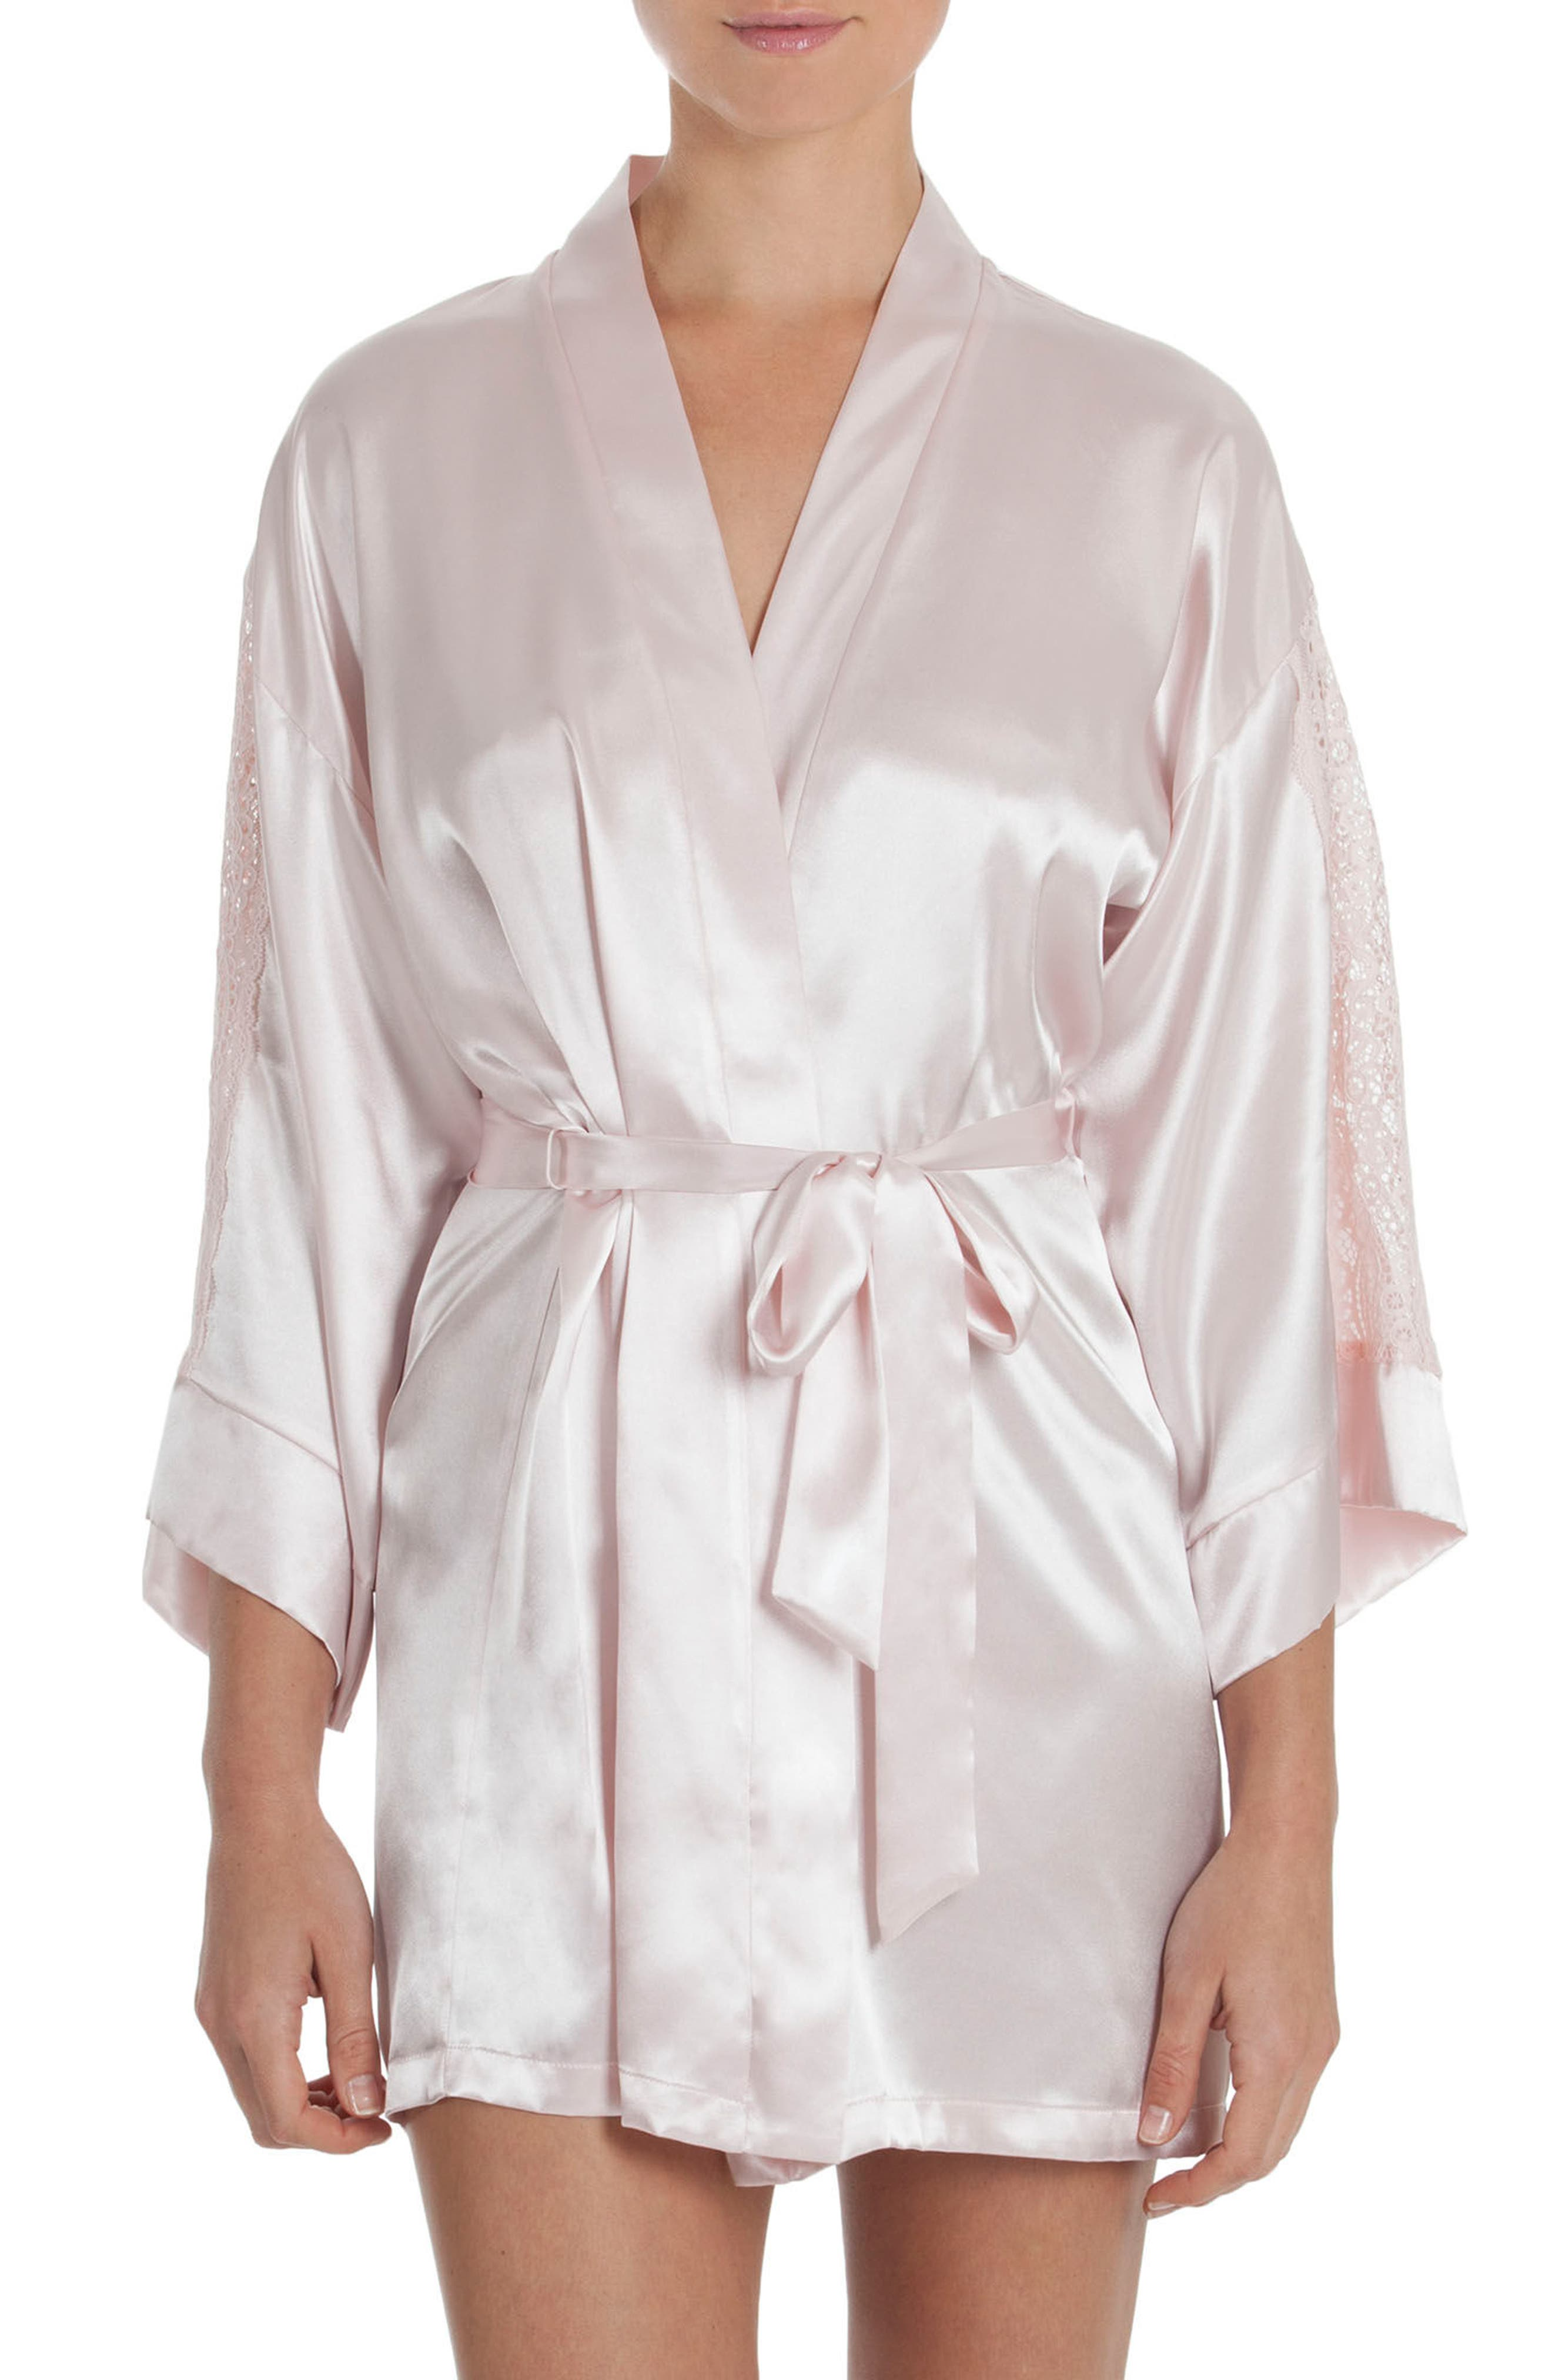 IN BLOOM BY JONQUIL Satin Robe, Main, color, 950